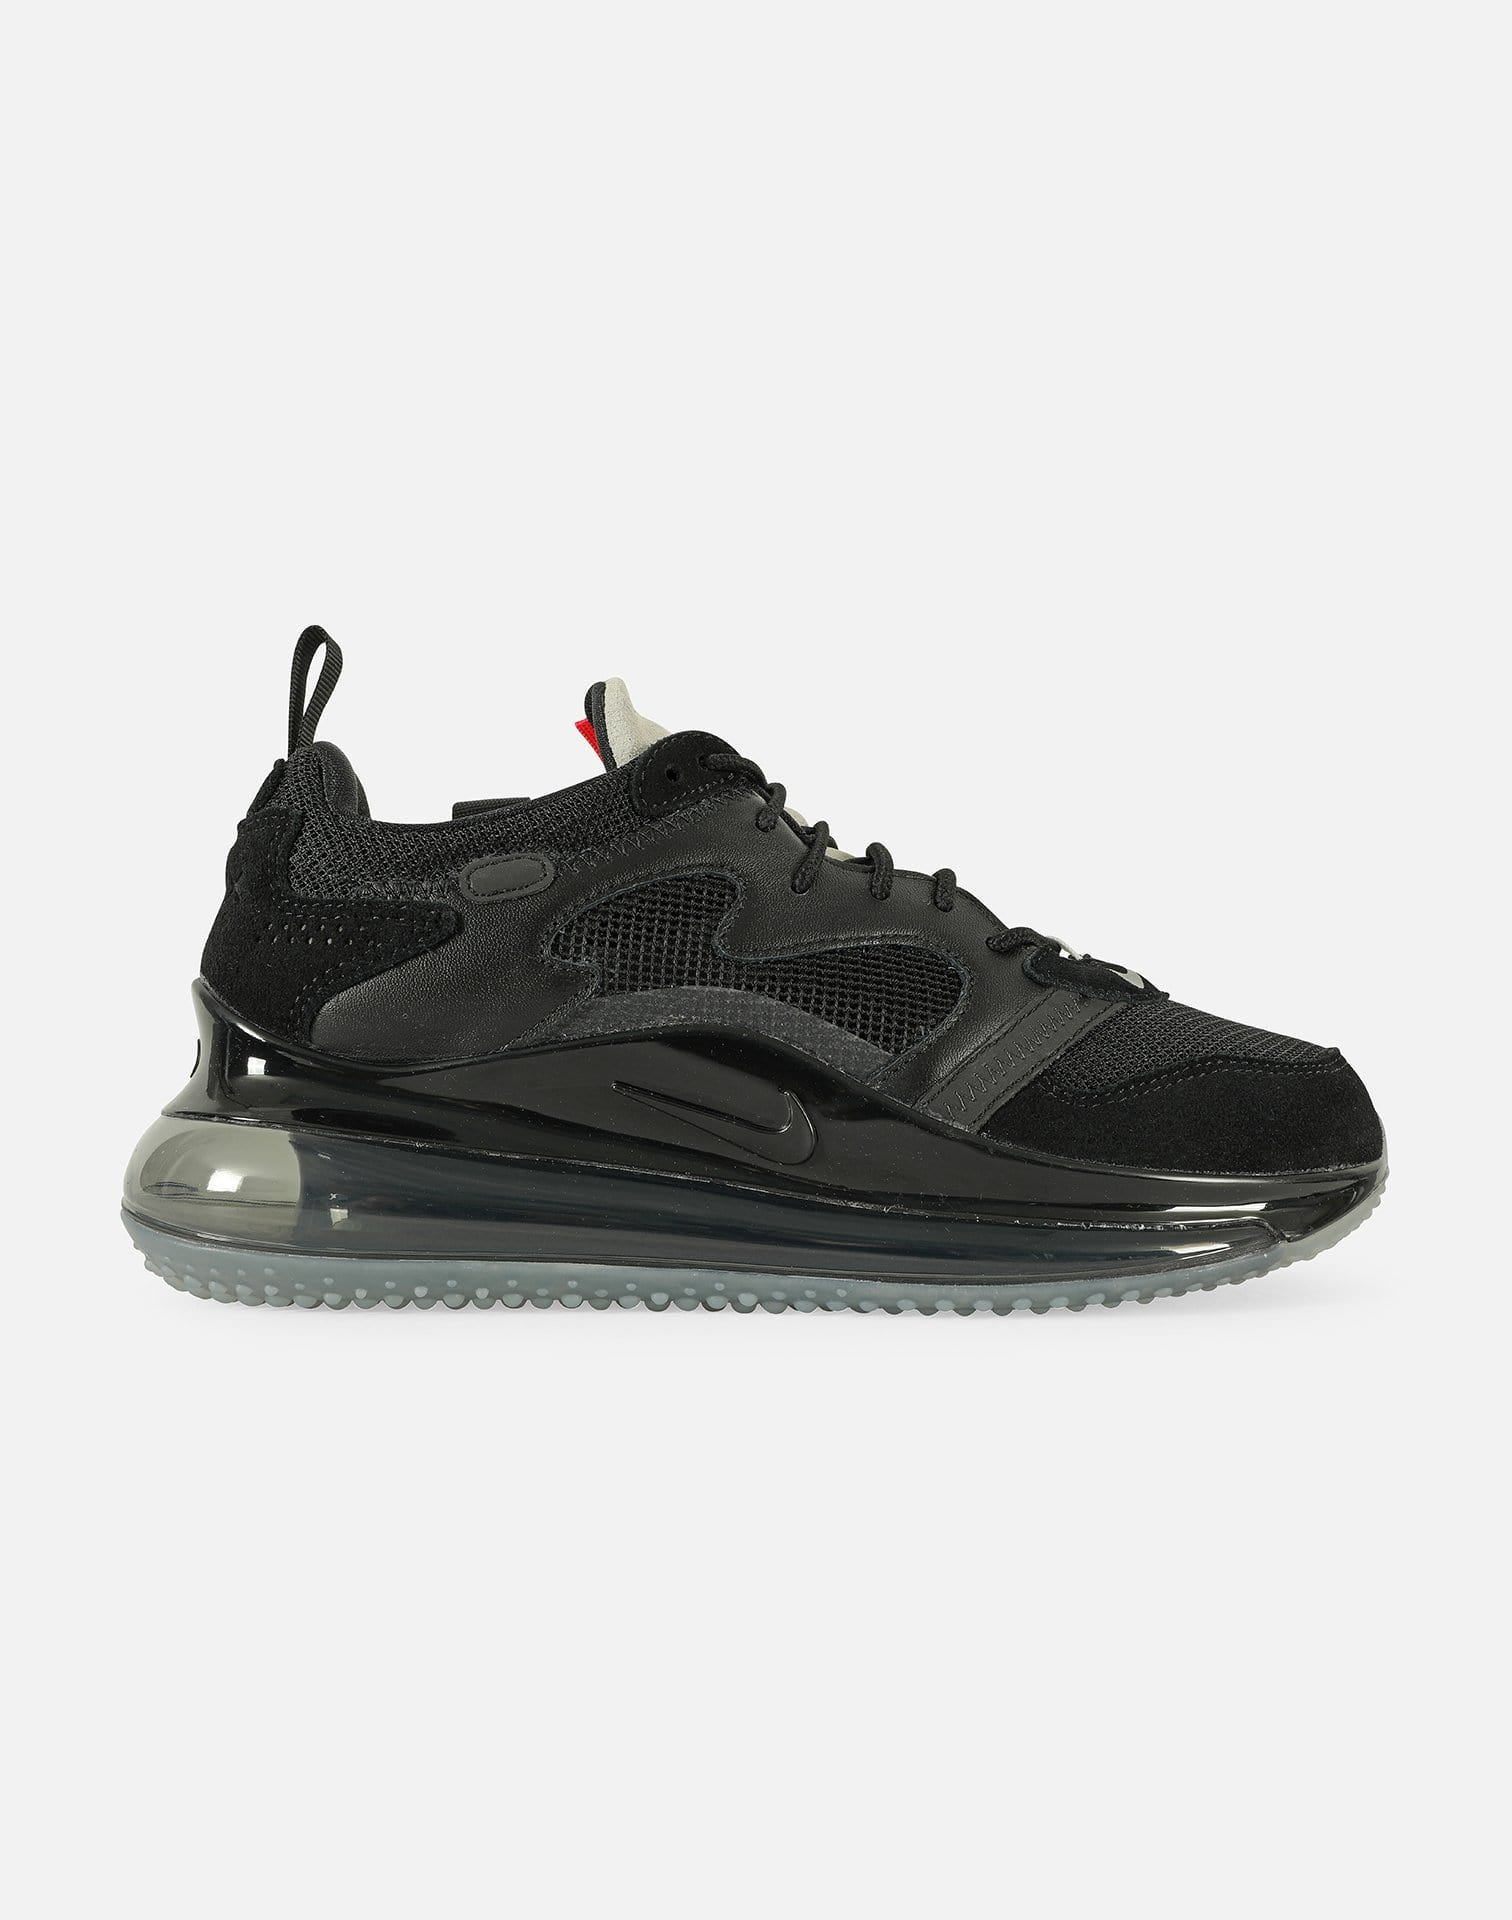 Nike A. MAX 720 OBJ BLK/WHT/RED